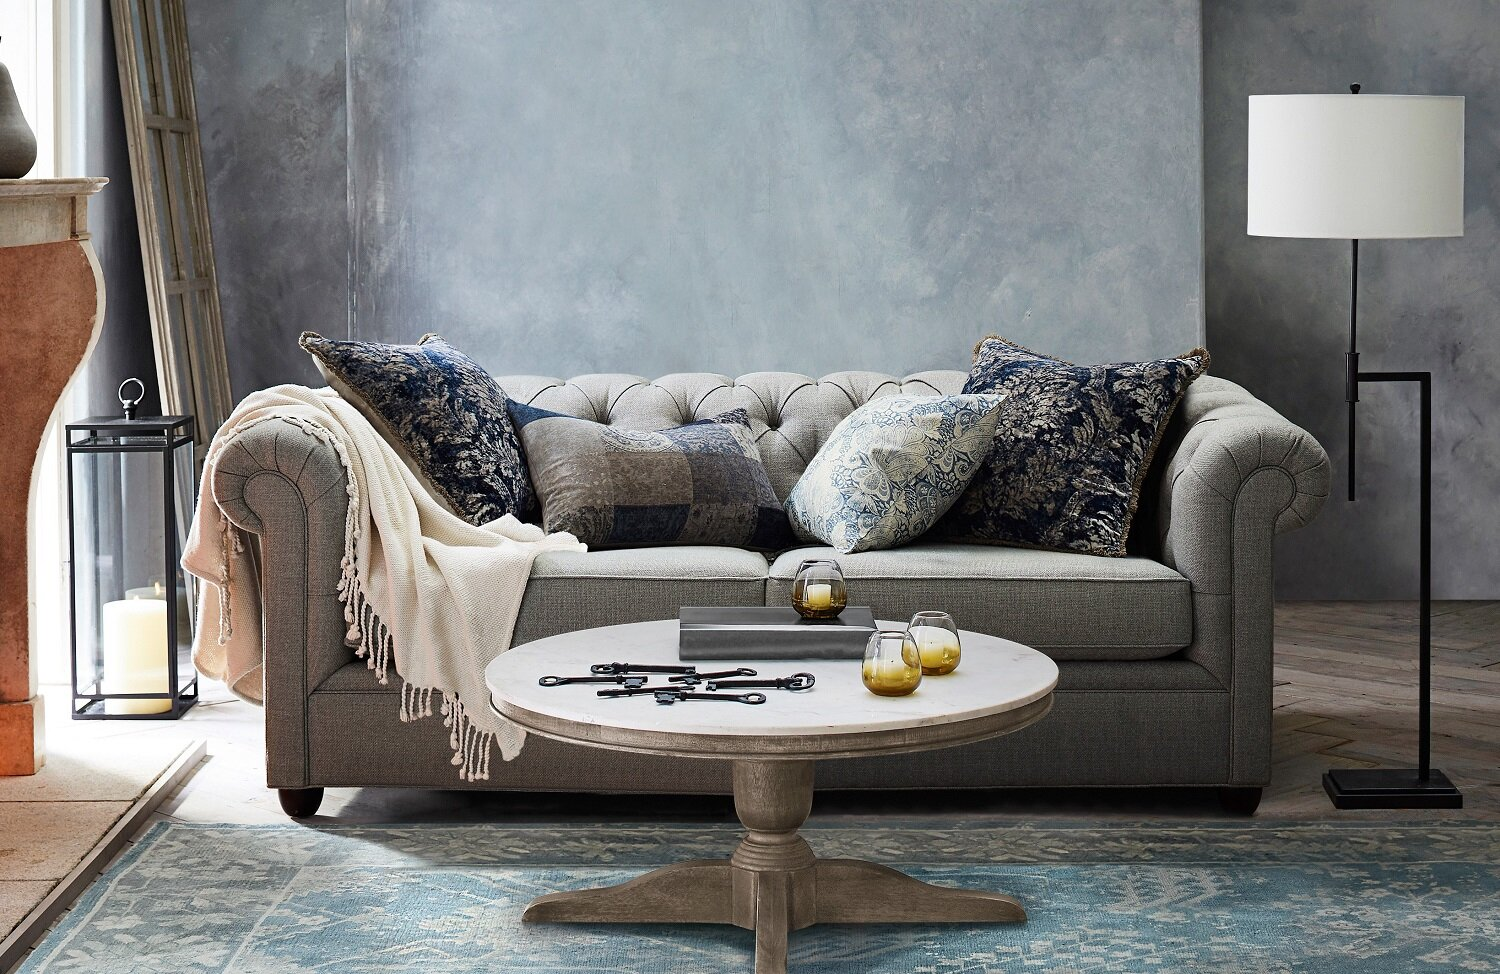 In the market for a new sofa? Glam it up with a chesterfield upholstered sofa. This one from Pottery Barn, has comfort and style and is crafted in the U.S. using eco-friendly materials. Photo: Pottery Barn